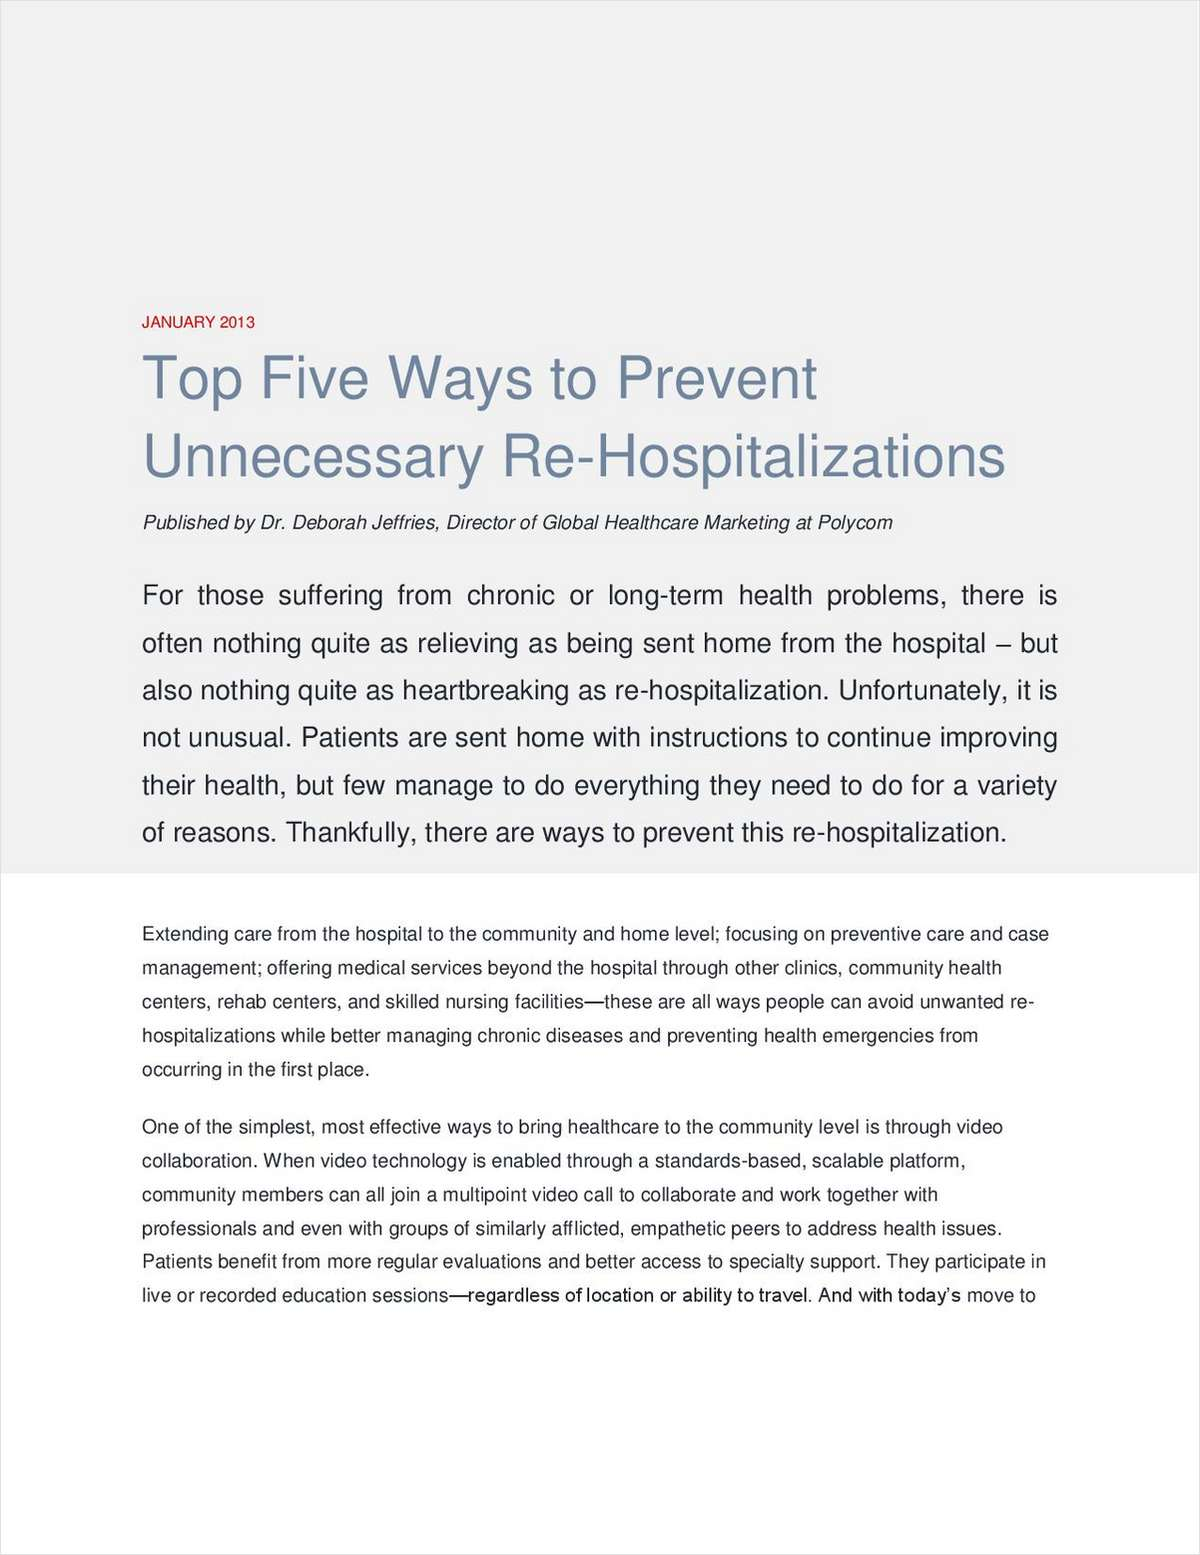 Top Five Ways to Prevent Unnecessary Re-Hospitalizations